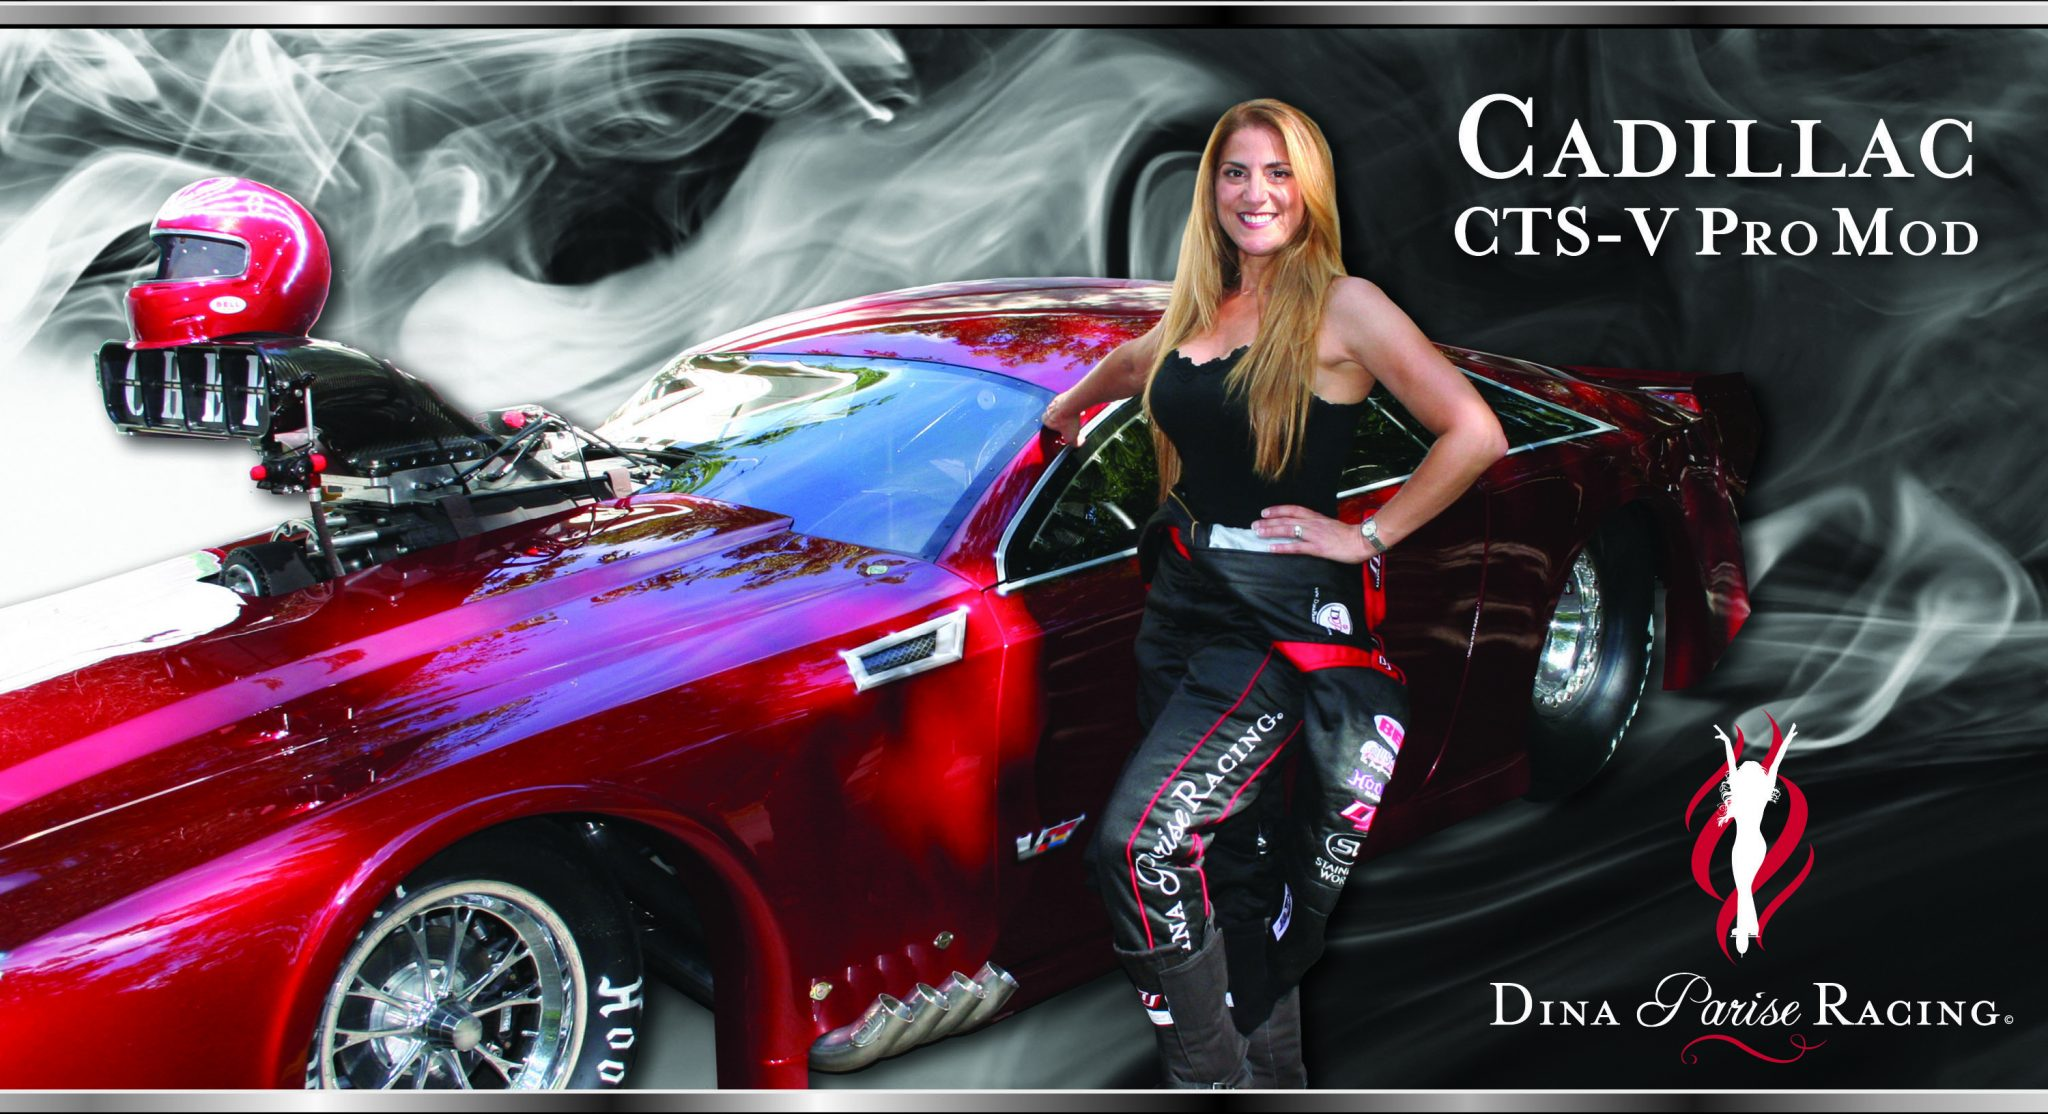 Dina Parise Racing headed to the Nassau County Cruise to the Show!